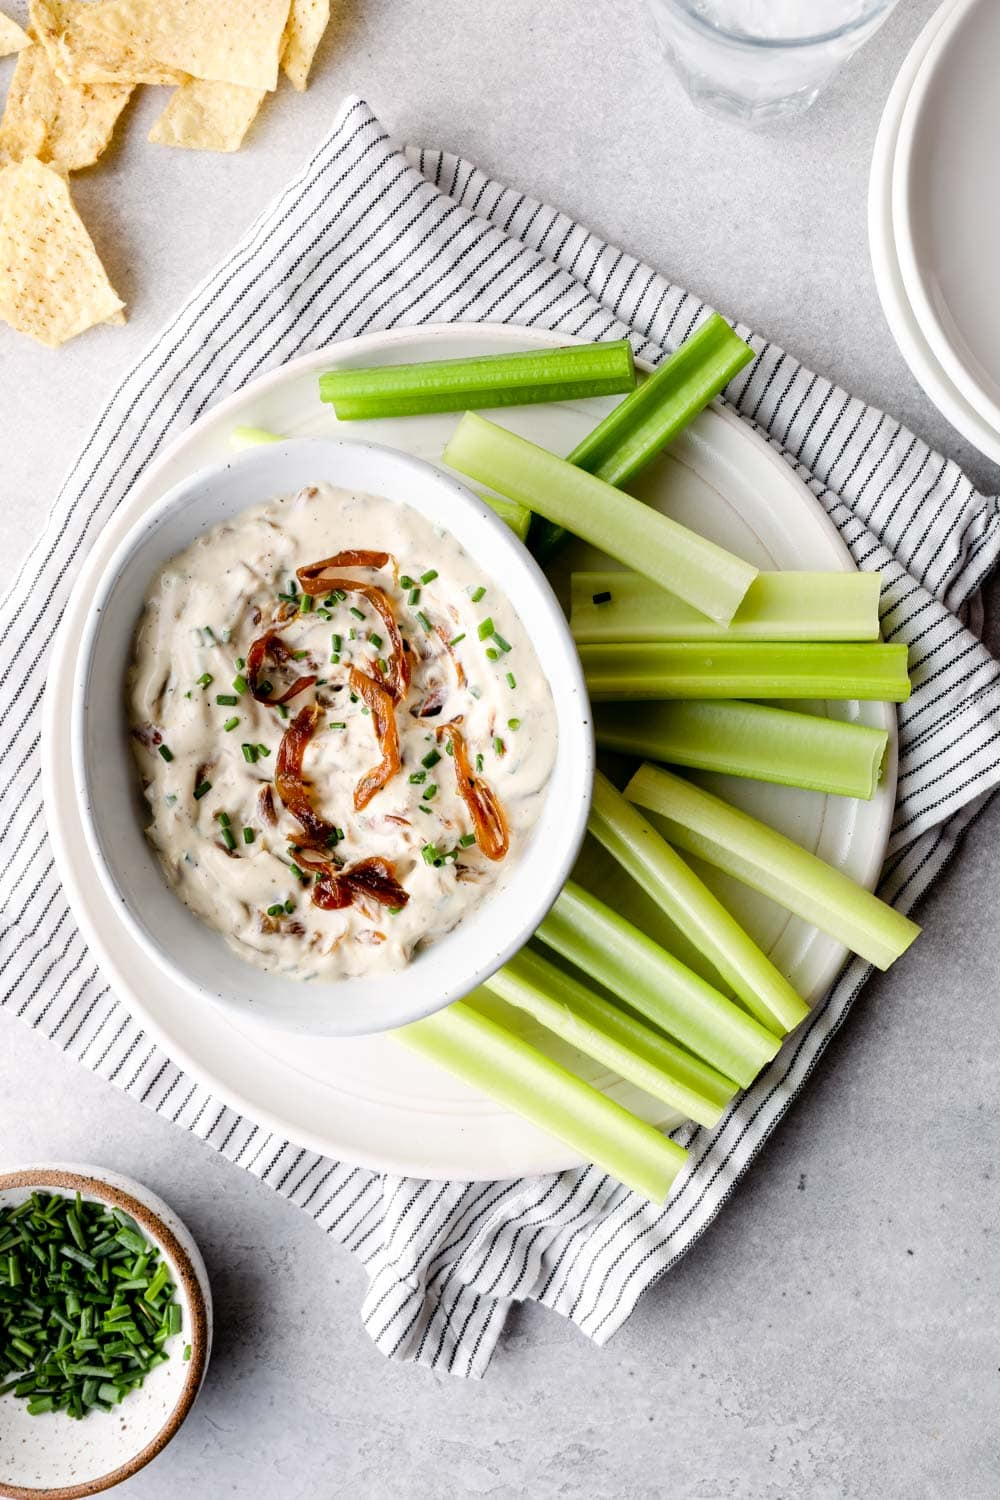 Vegan French Onion Dip with chives and caramelized onions.